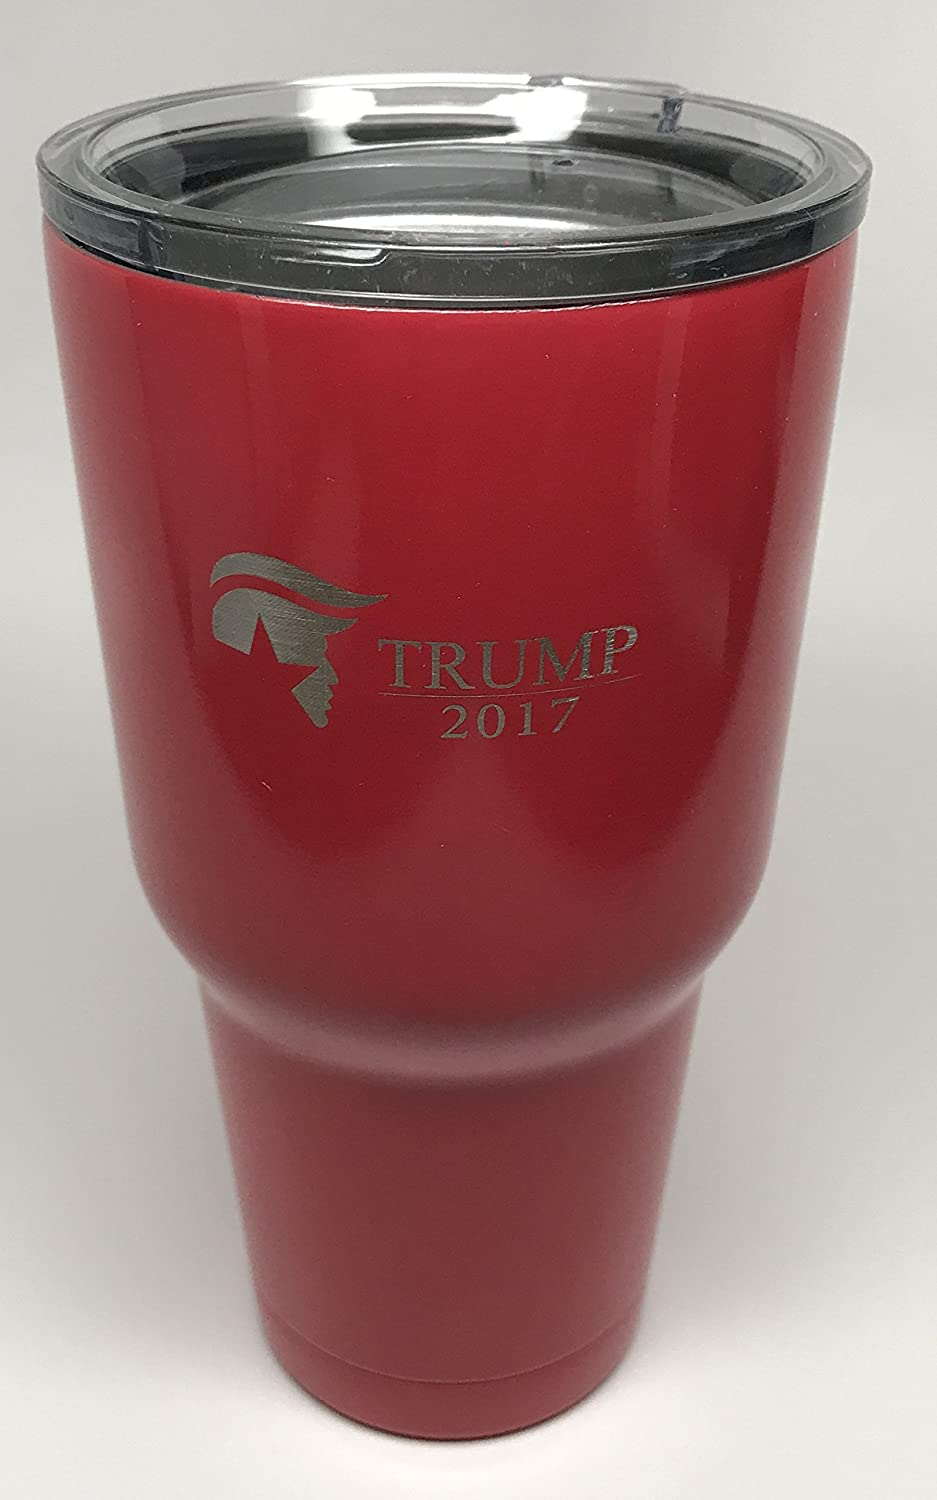 just like the Trump Coins Aizics RED Donald Trump 30oz Tumbler with plastic lid and metal straw Collector item from 2017 Inauguration